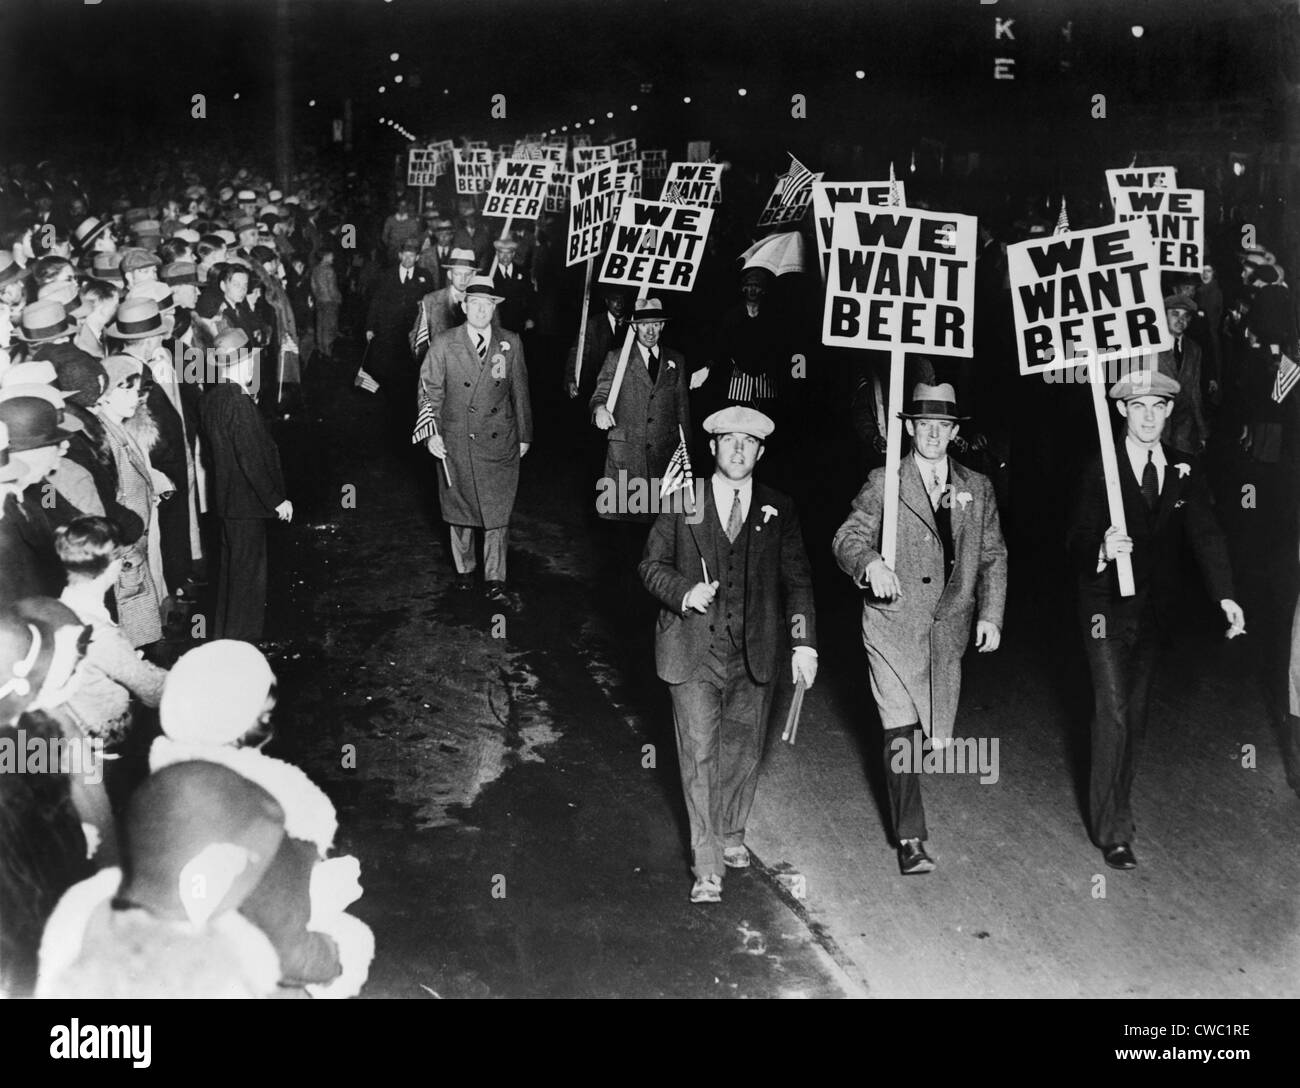 Labor union members protesting Prohibition in Newark New Jersey carrying signs reading 'We want beer.' October 1931. Stock Photo